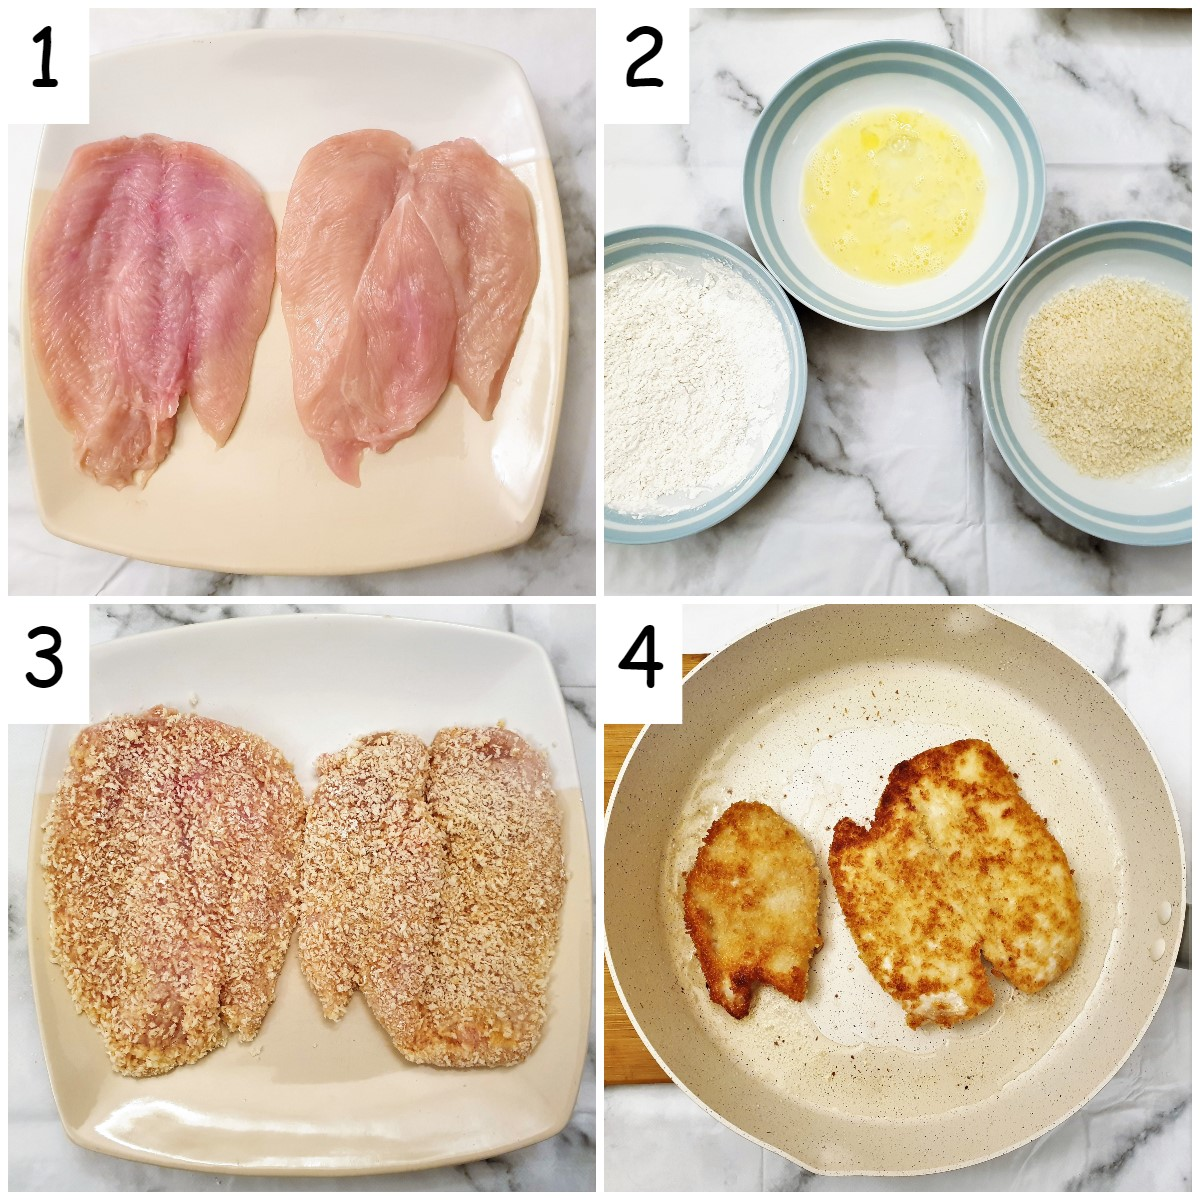 Steps for coating and frying chicken schnitzels.